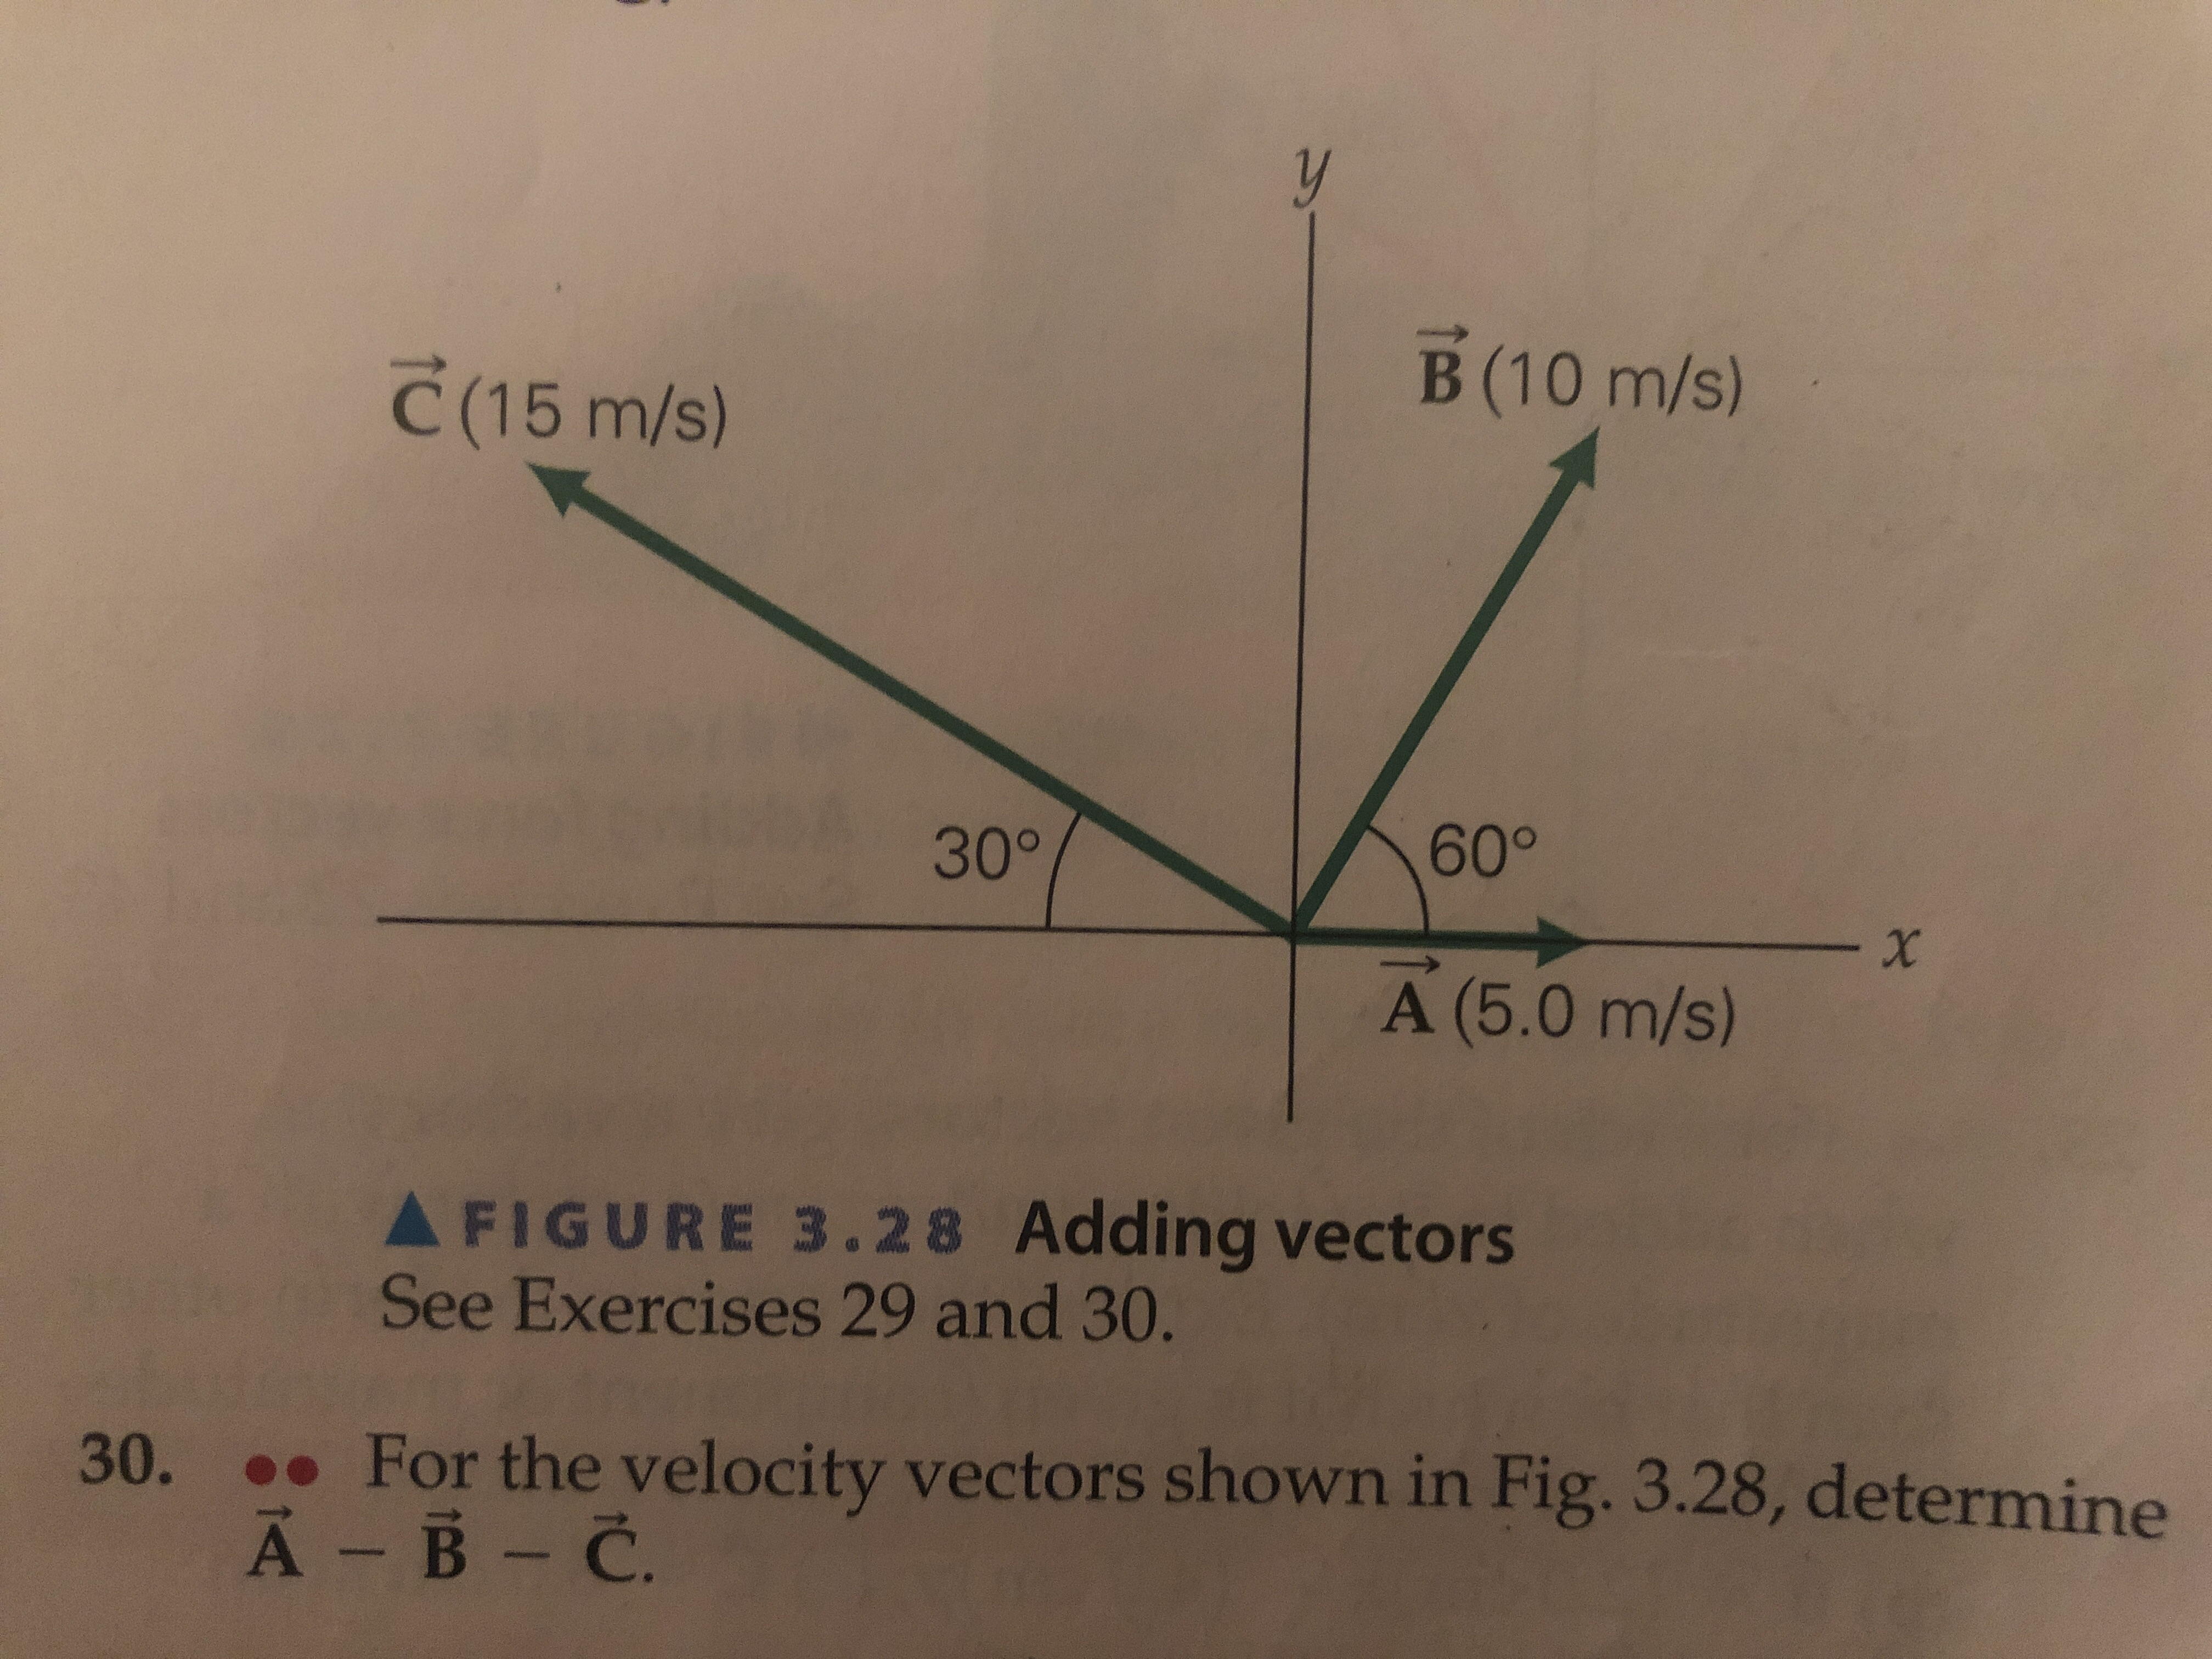 B (10 m/s) C(15 m/s) 60° 30° - X A (5.0 m/s) AFIGURE 3.28 Adding vectors See Exercises 29 and 30. For the velocity vectors shown in Fig. 3.28, determine 30. A- B C